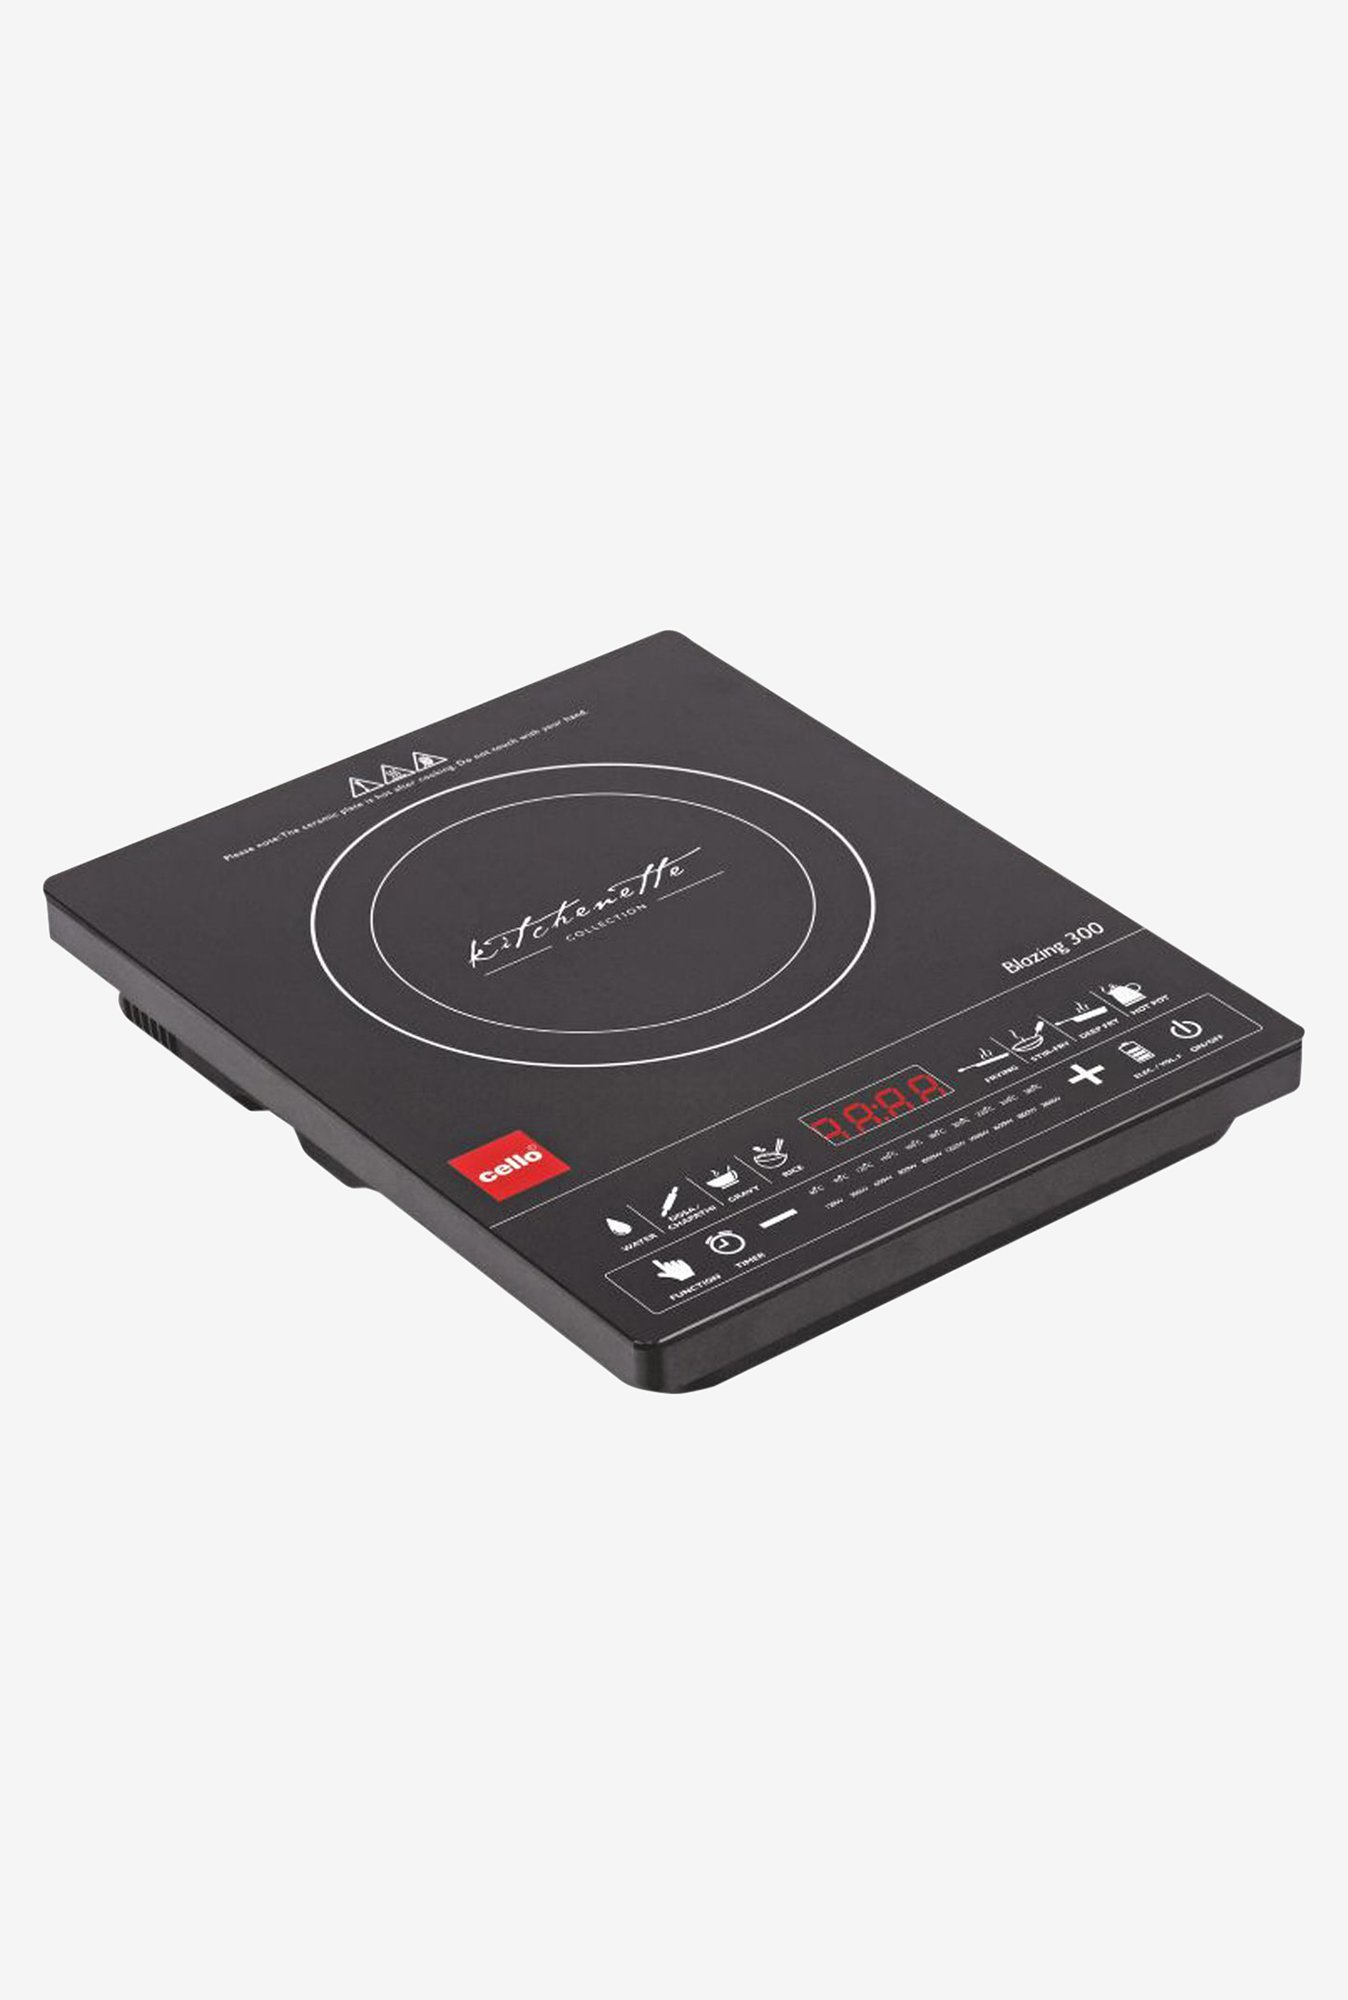 Cello Blazing 300 2100W Induction Cooker Black